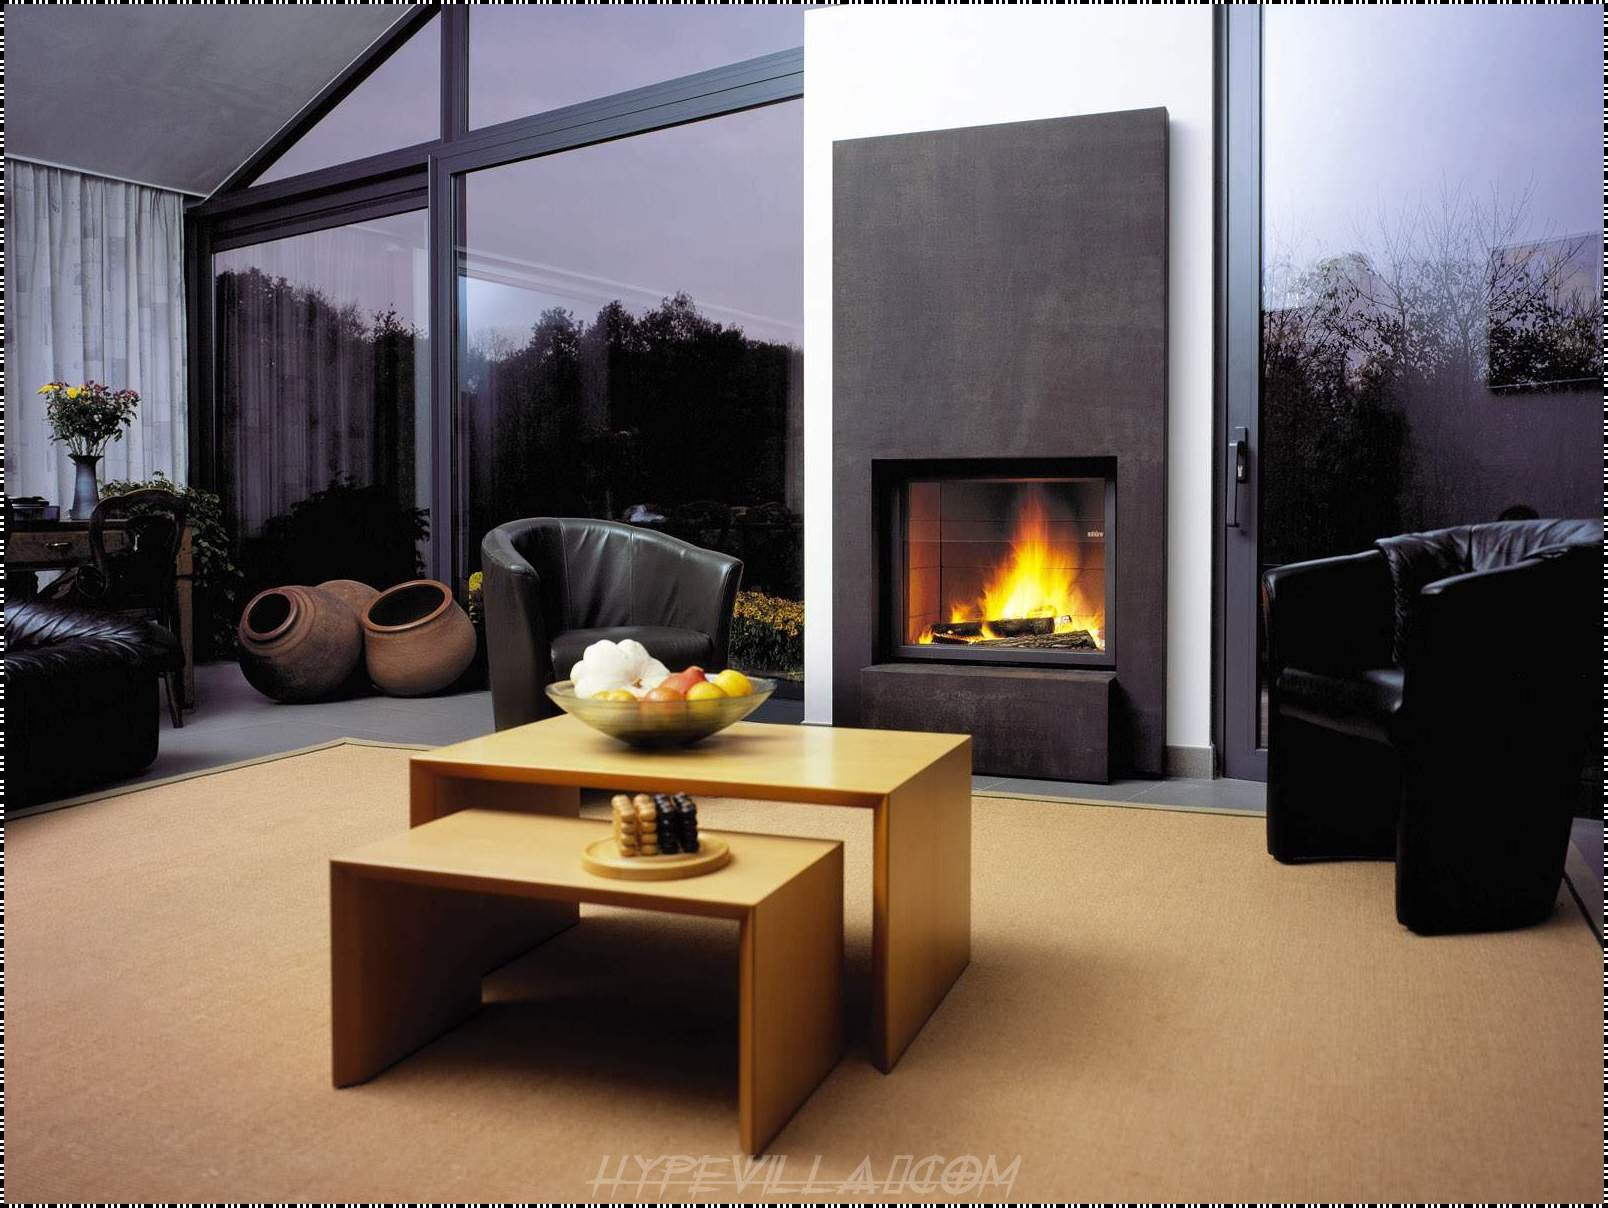 Modern Living Room Decorating Ideas Fireplace 25 Hot Fireplace Design Ideas for Your House